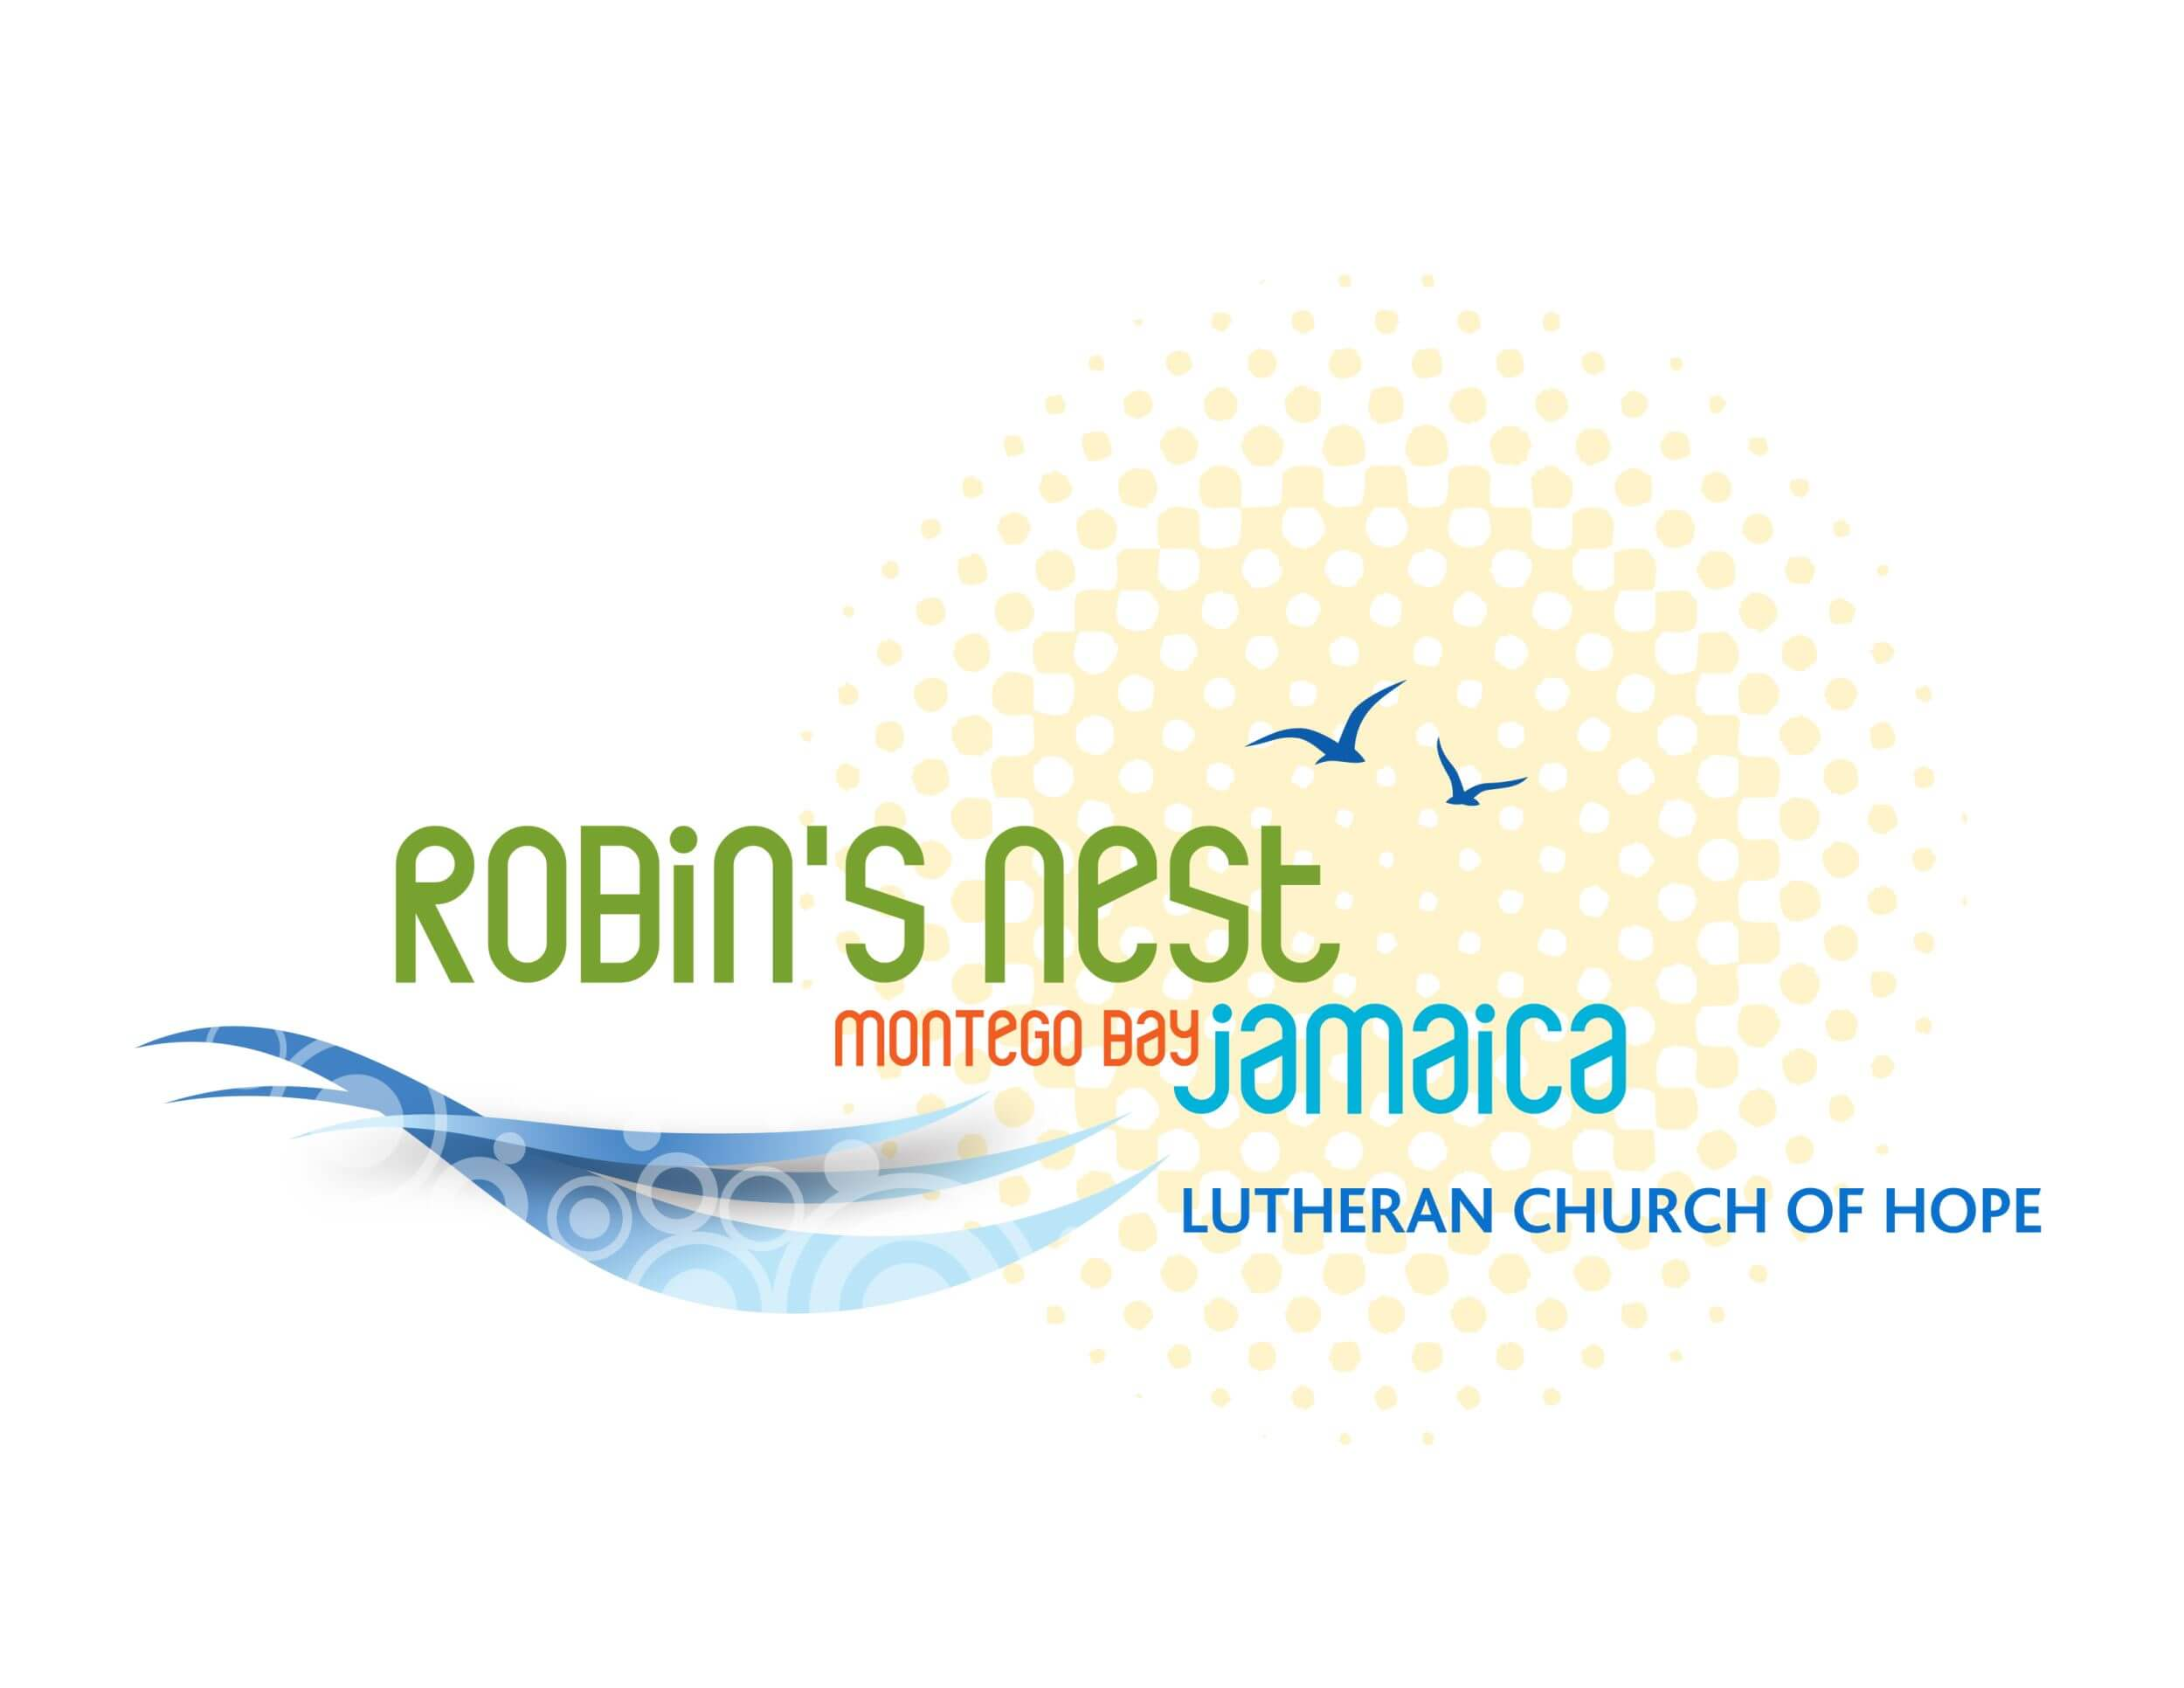 Mission Robin's Nest